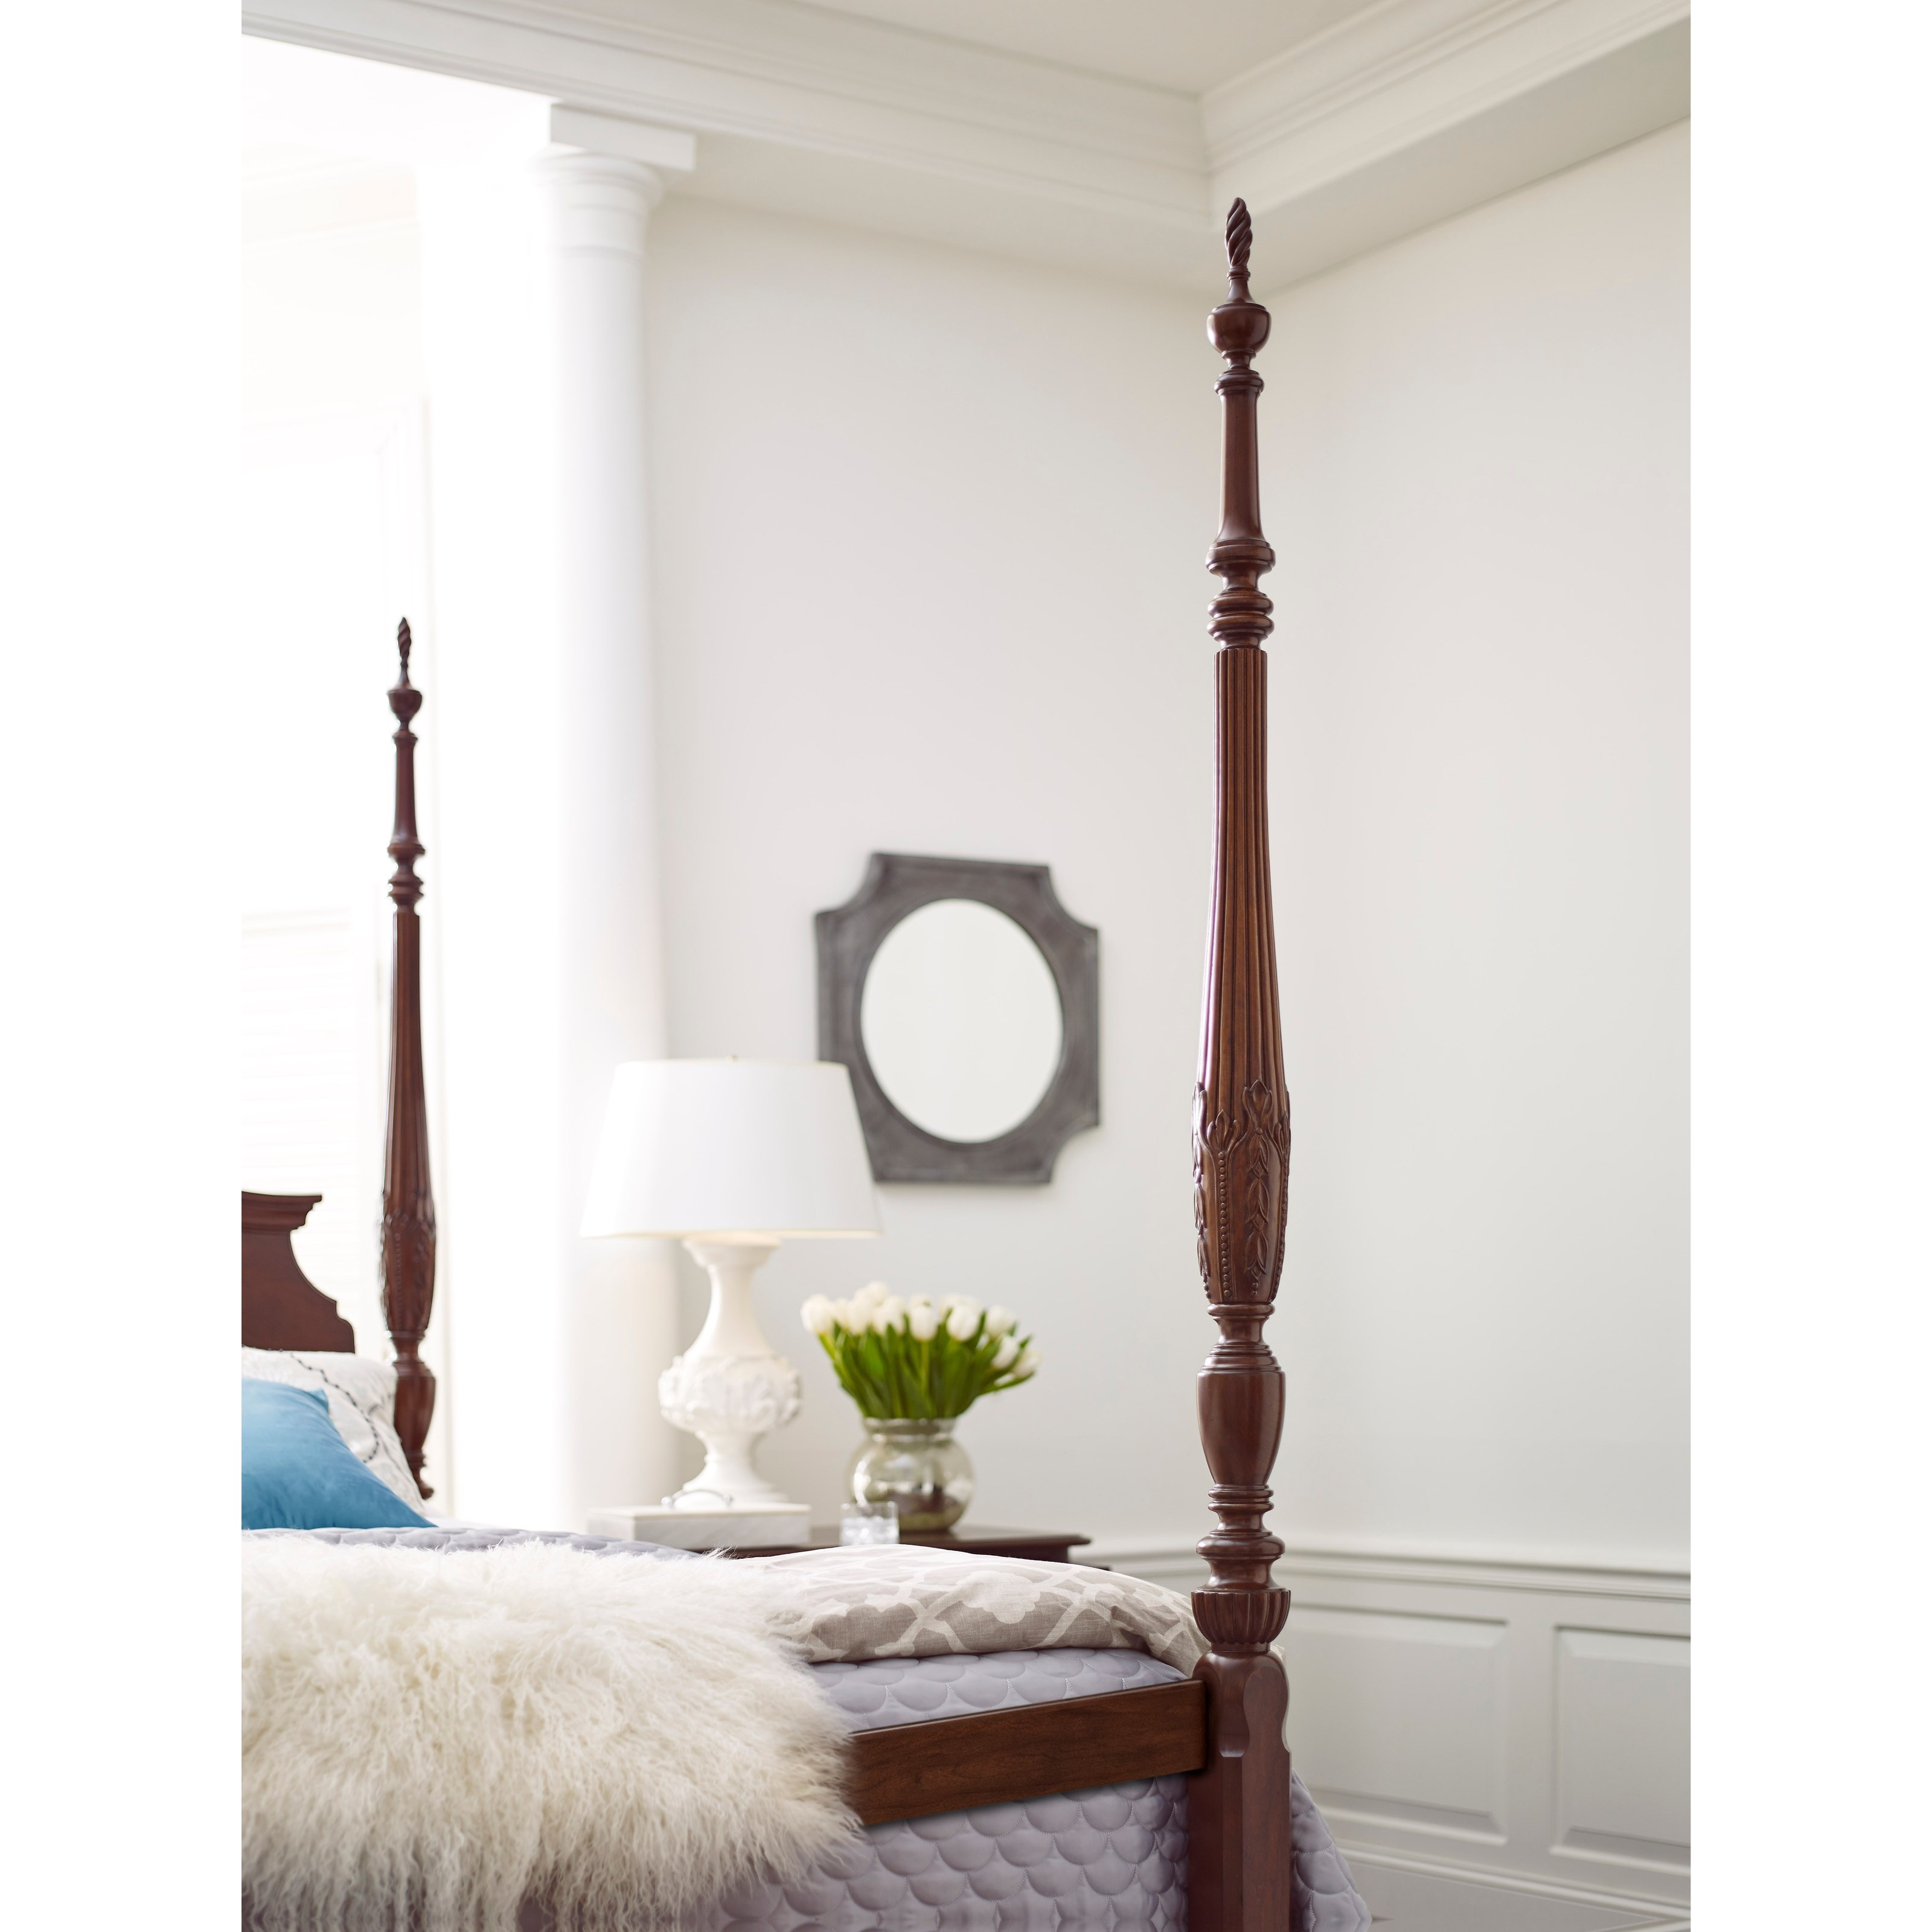 Kincaid Furniture Hadleigh 607 324p Queen Rice Carved Poster Bed With Pediment Headboard And